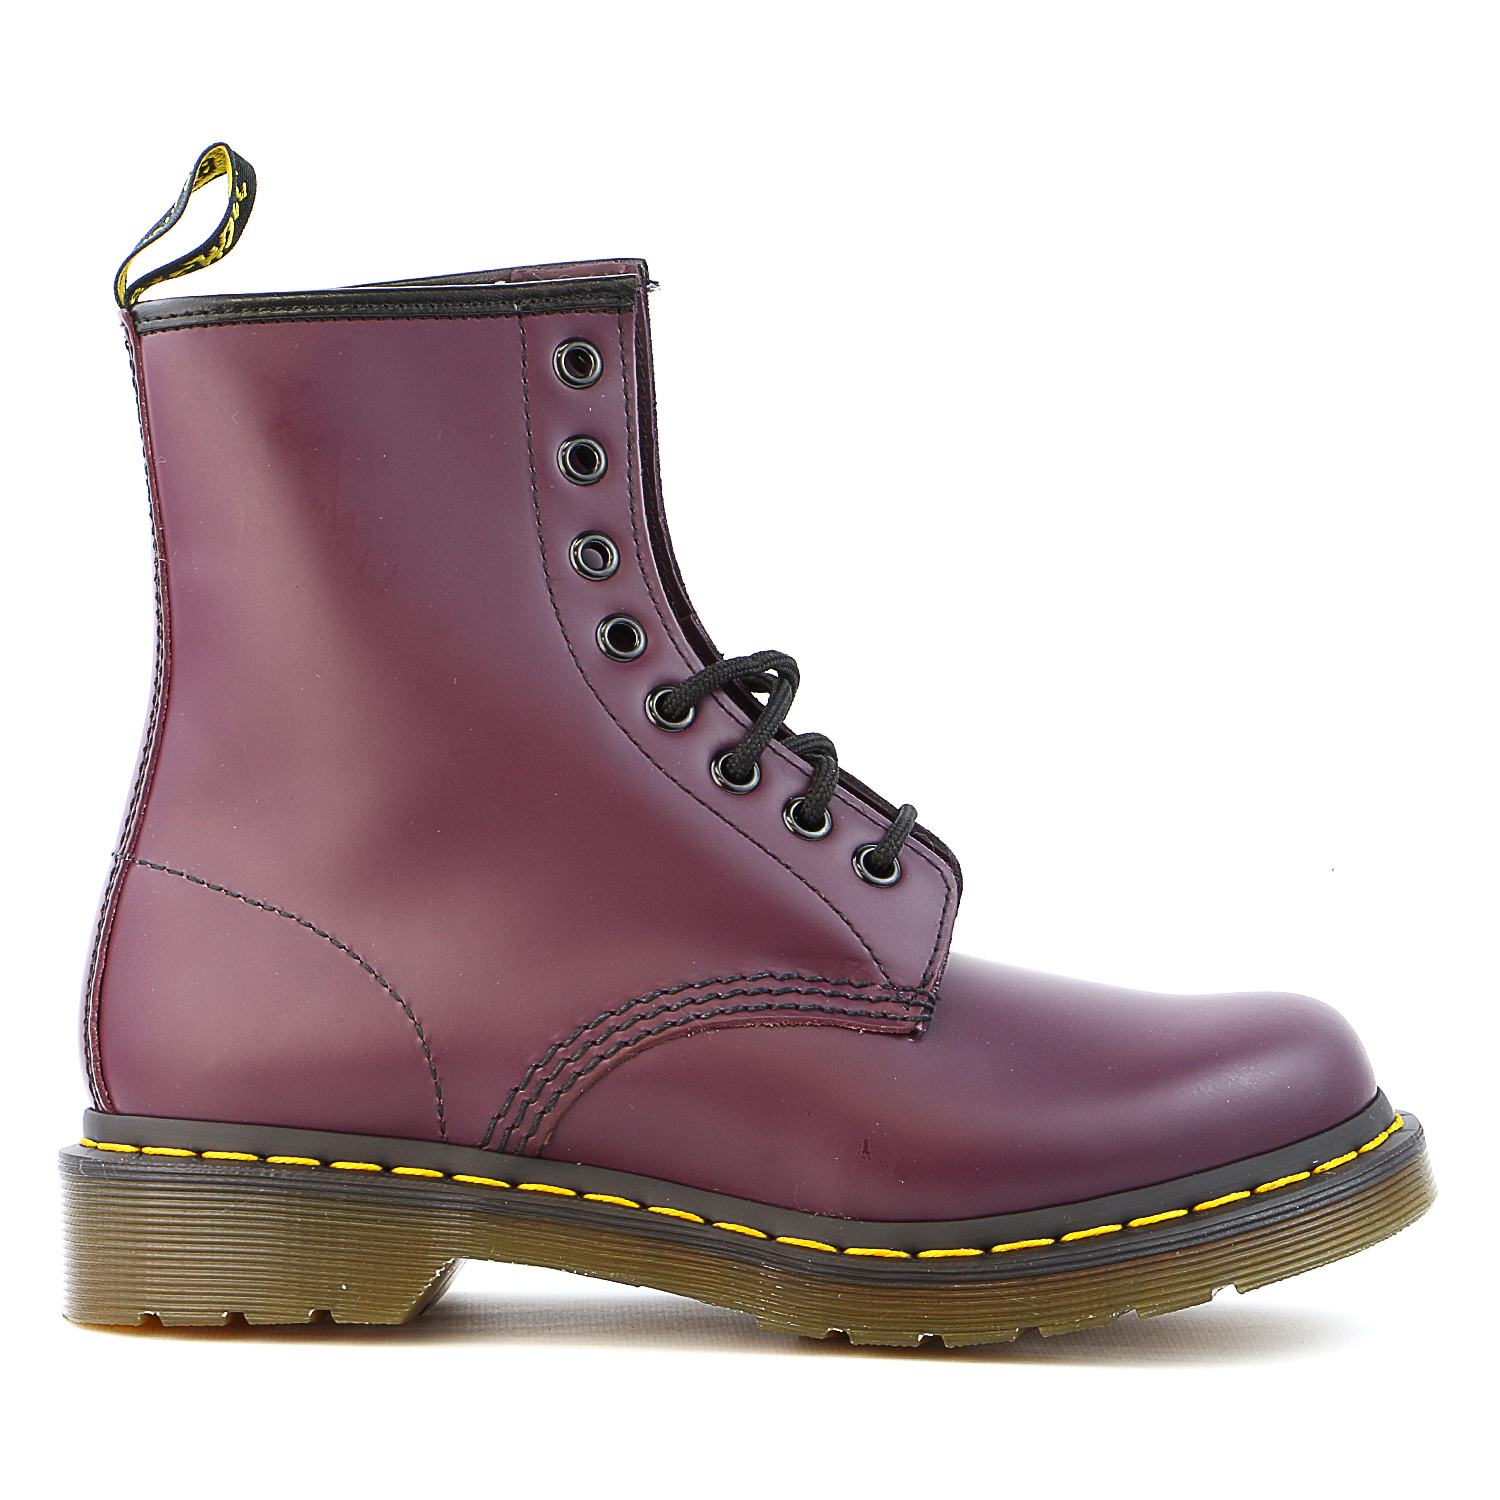 Dr. Martens 1460 Classic Boot Womens by Perry Ellis